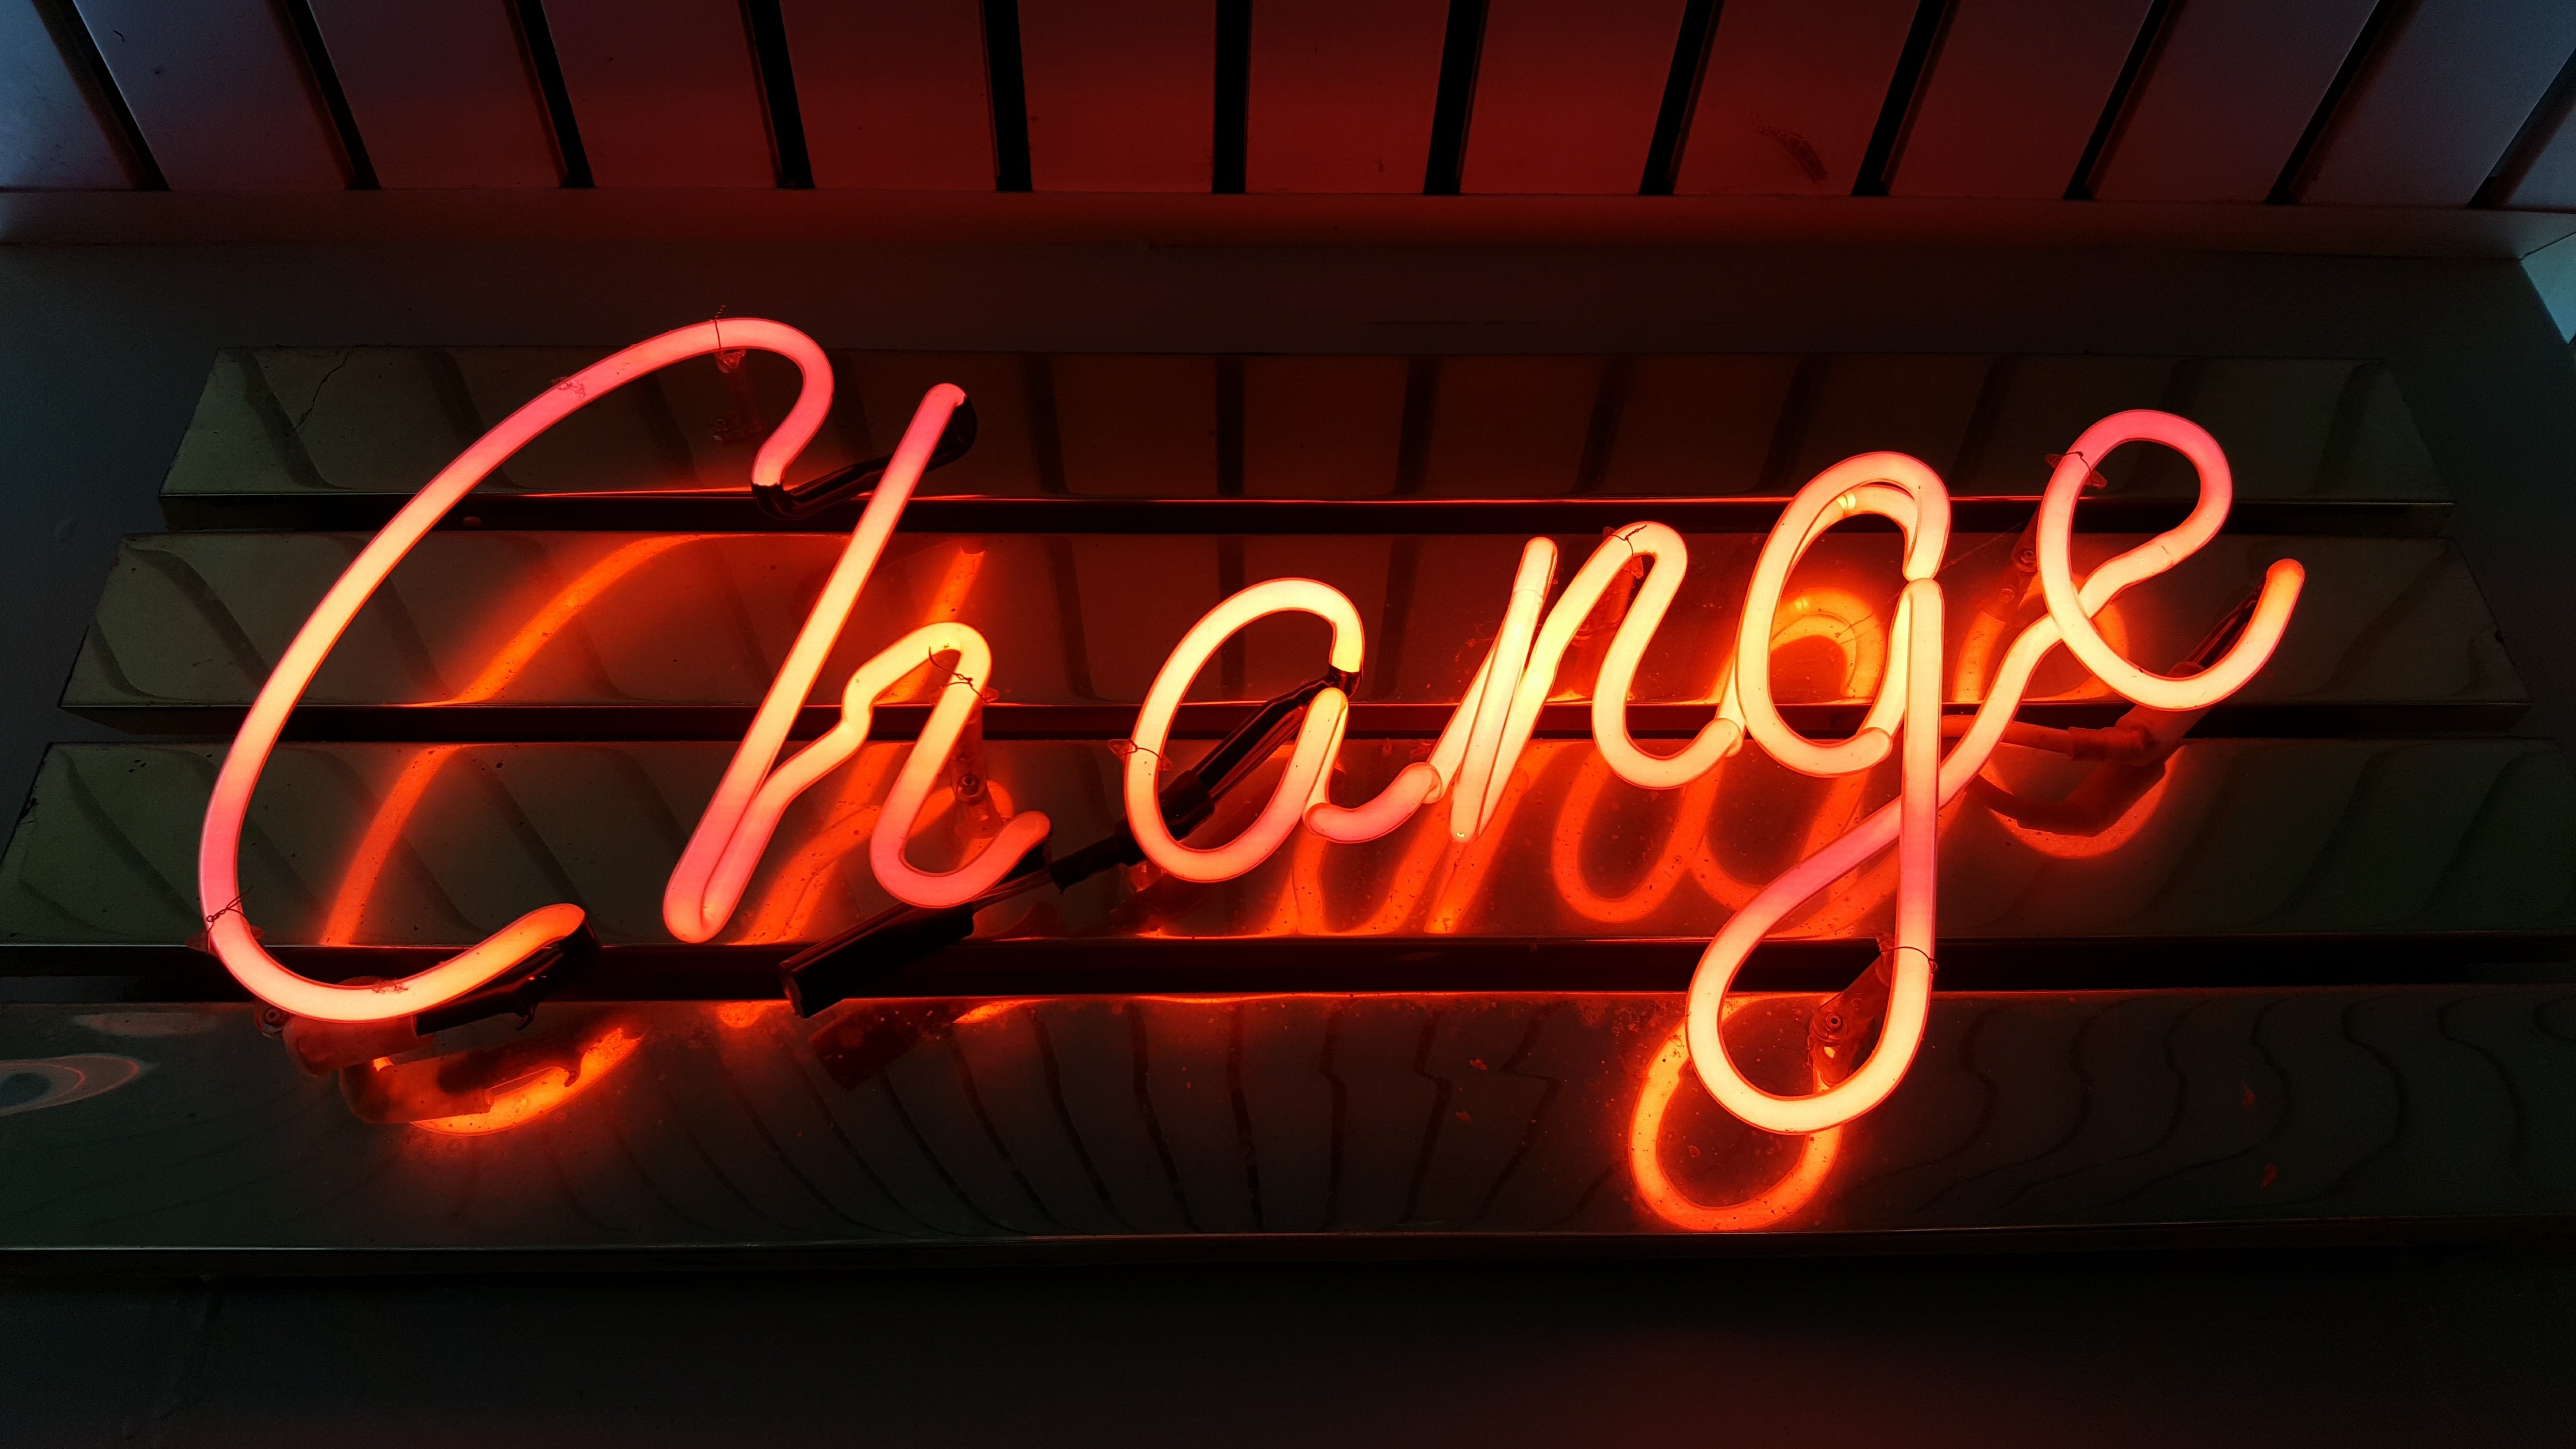 Neon sign which says 'Change'